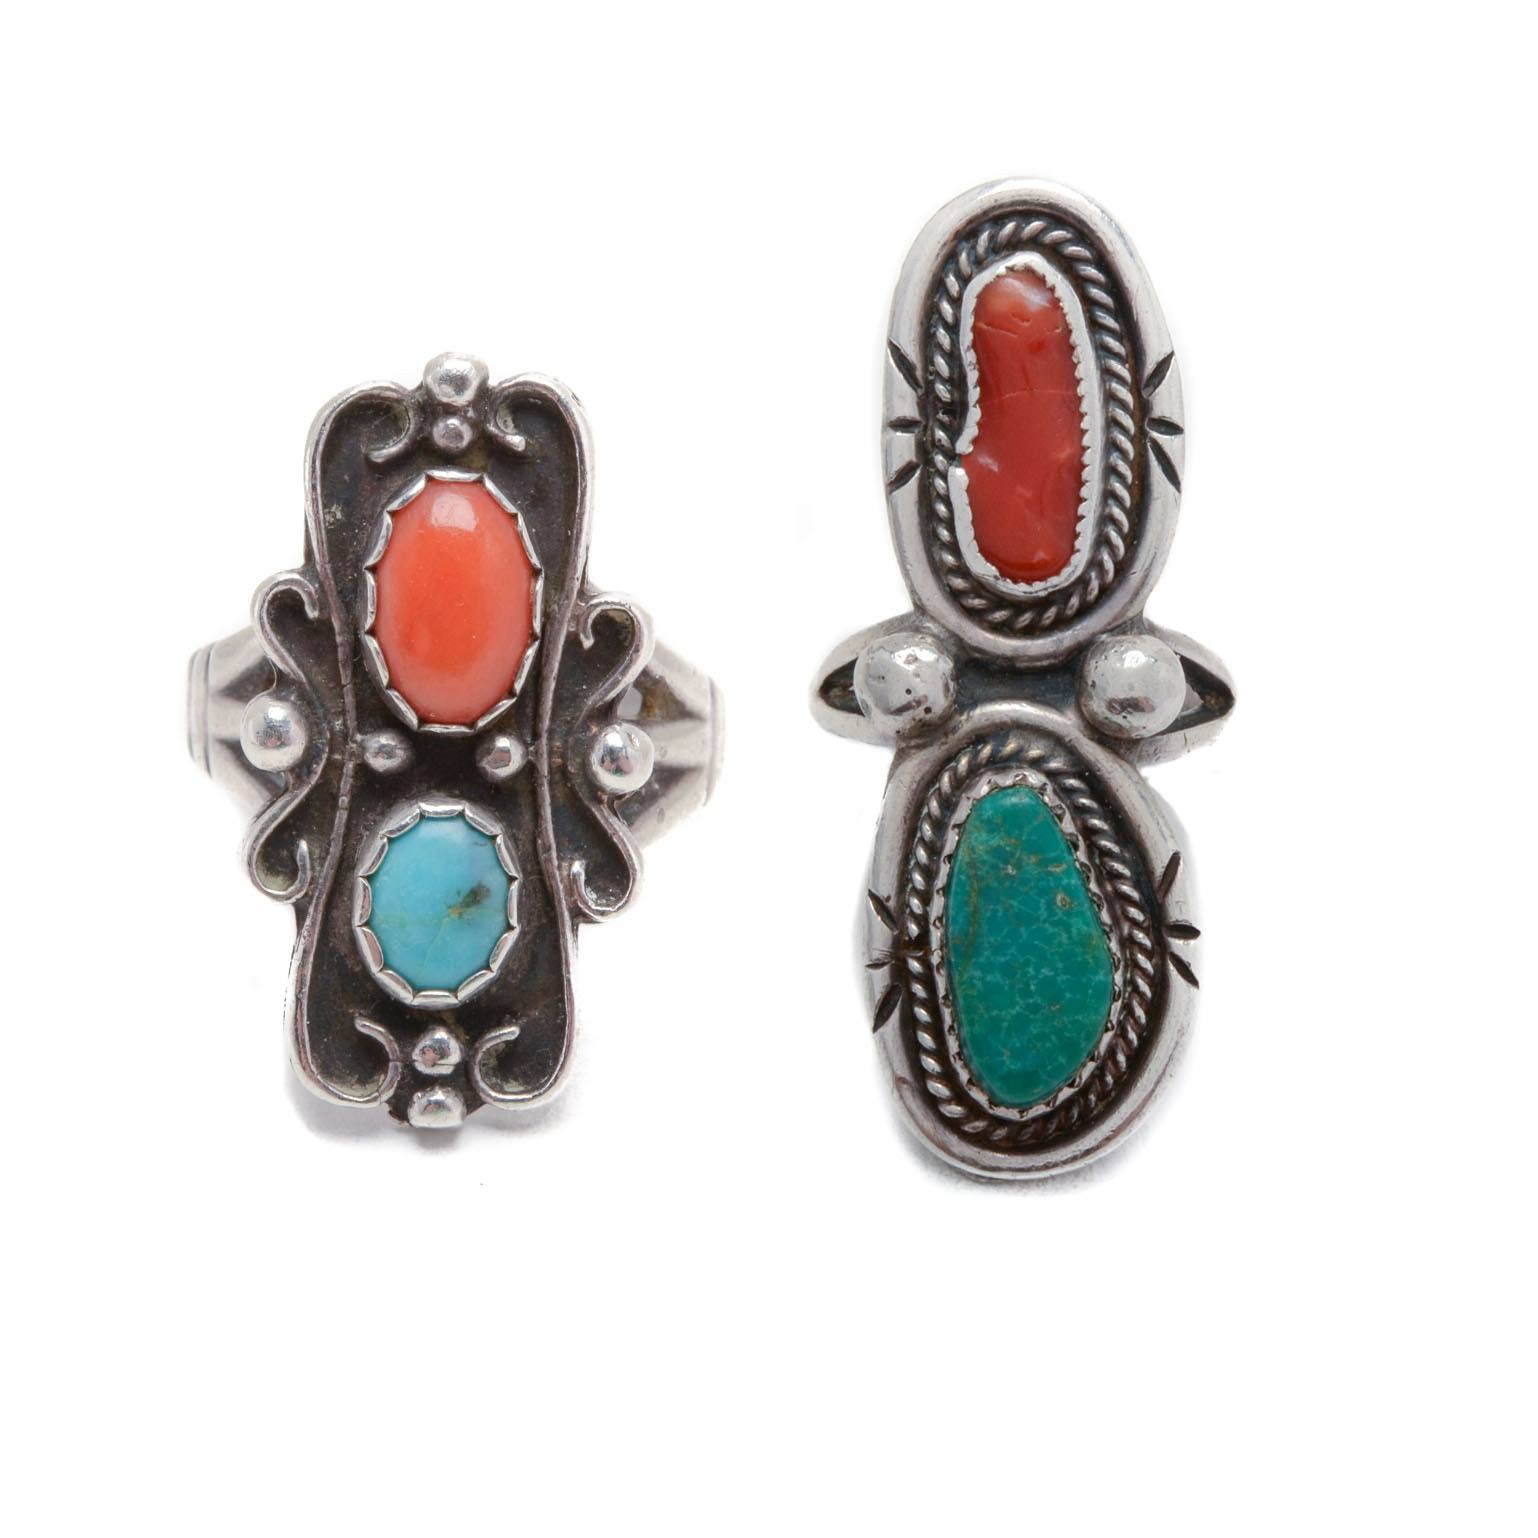 Pairing of Sterling Silver Turquoise and Coral Rings